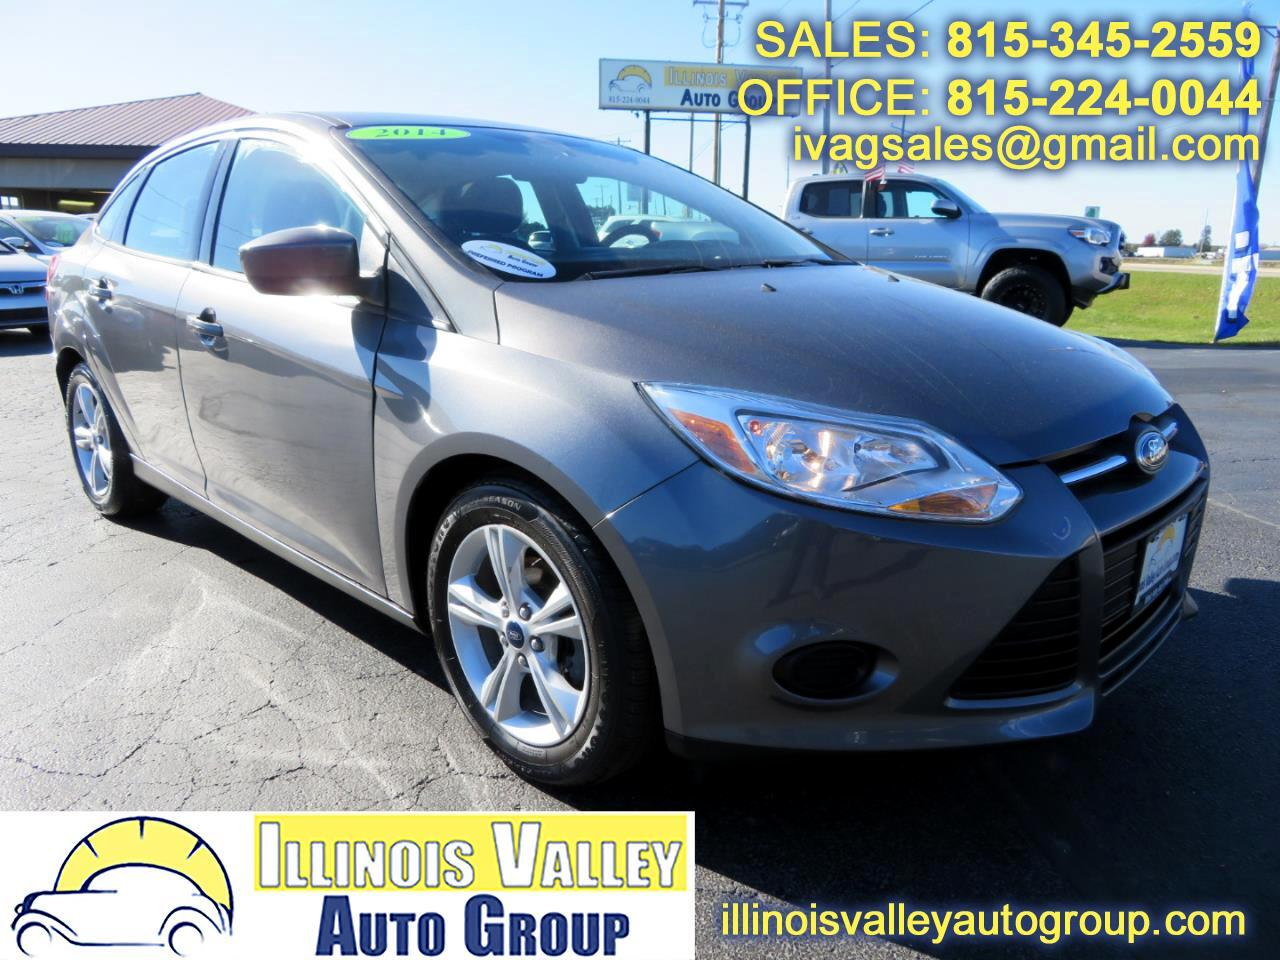 Used Cars For Sale Peru Il 61354 Illinois Valley Auto Group 2010 Chevrolet Impala Fuel Filter 2014 Ford Focus Se Sedan